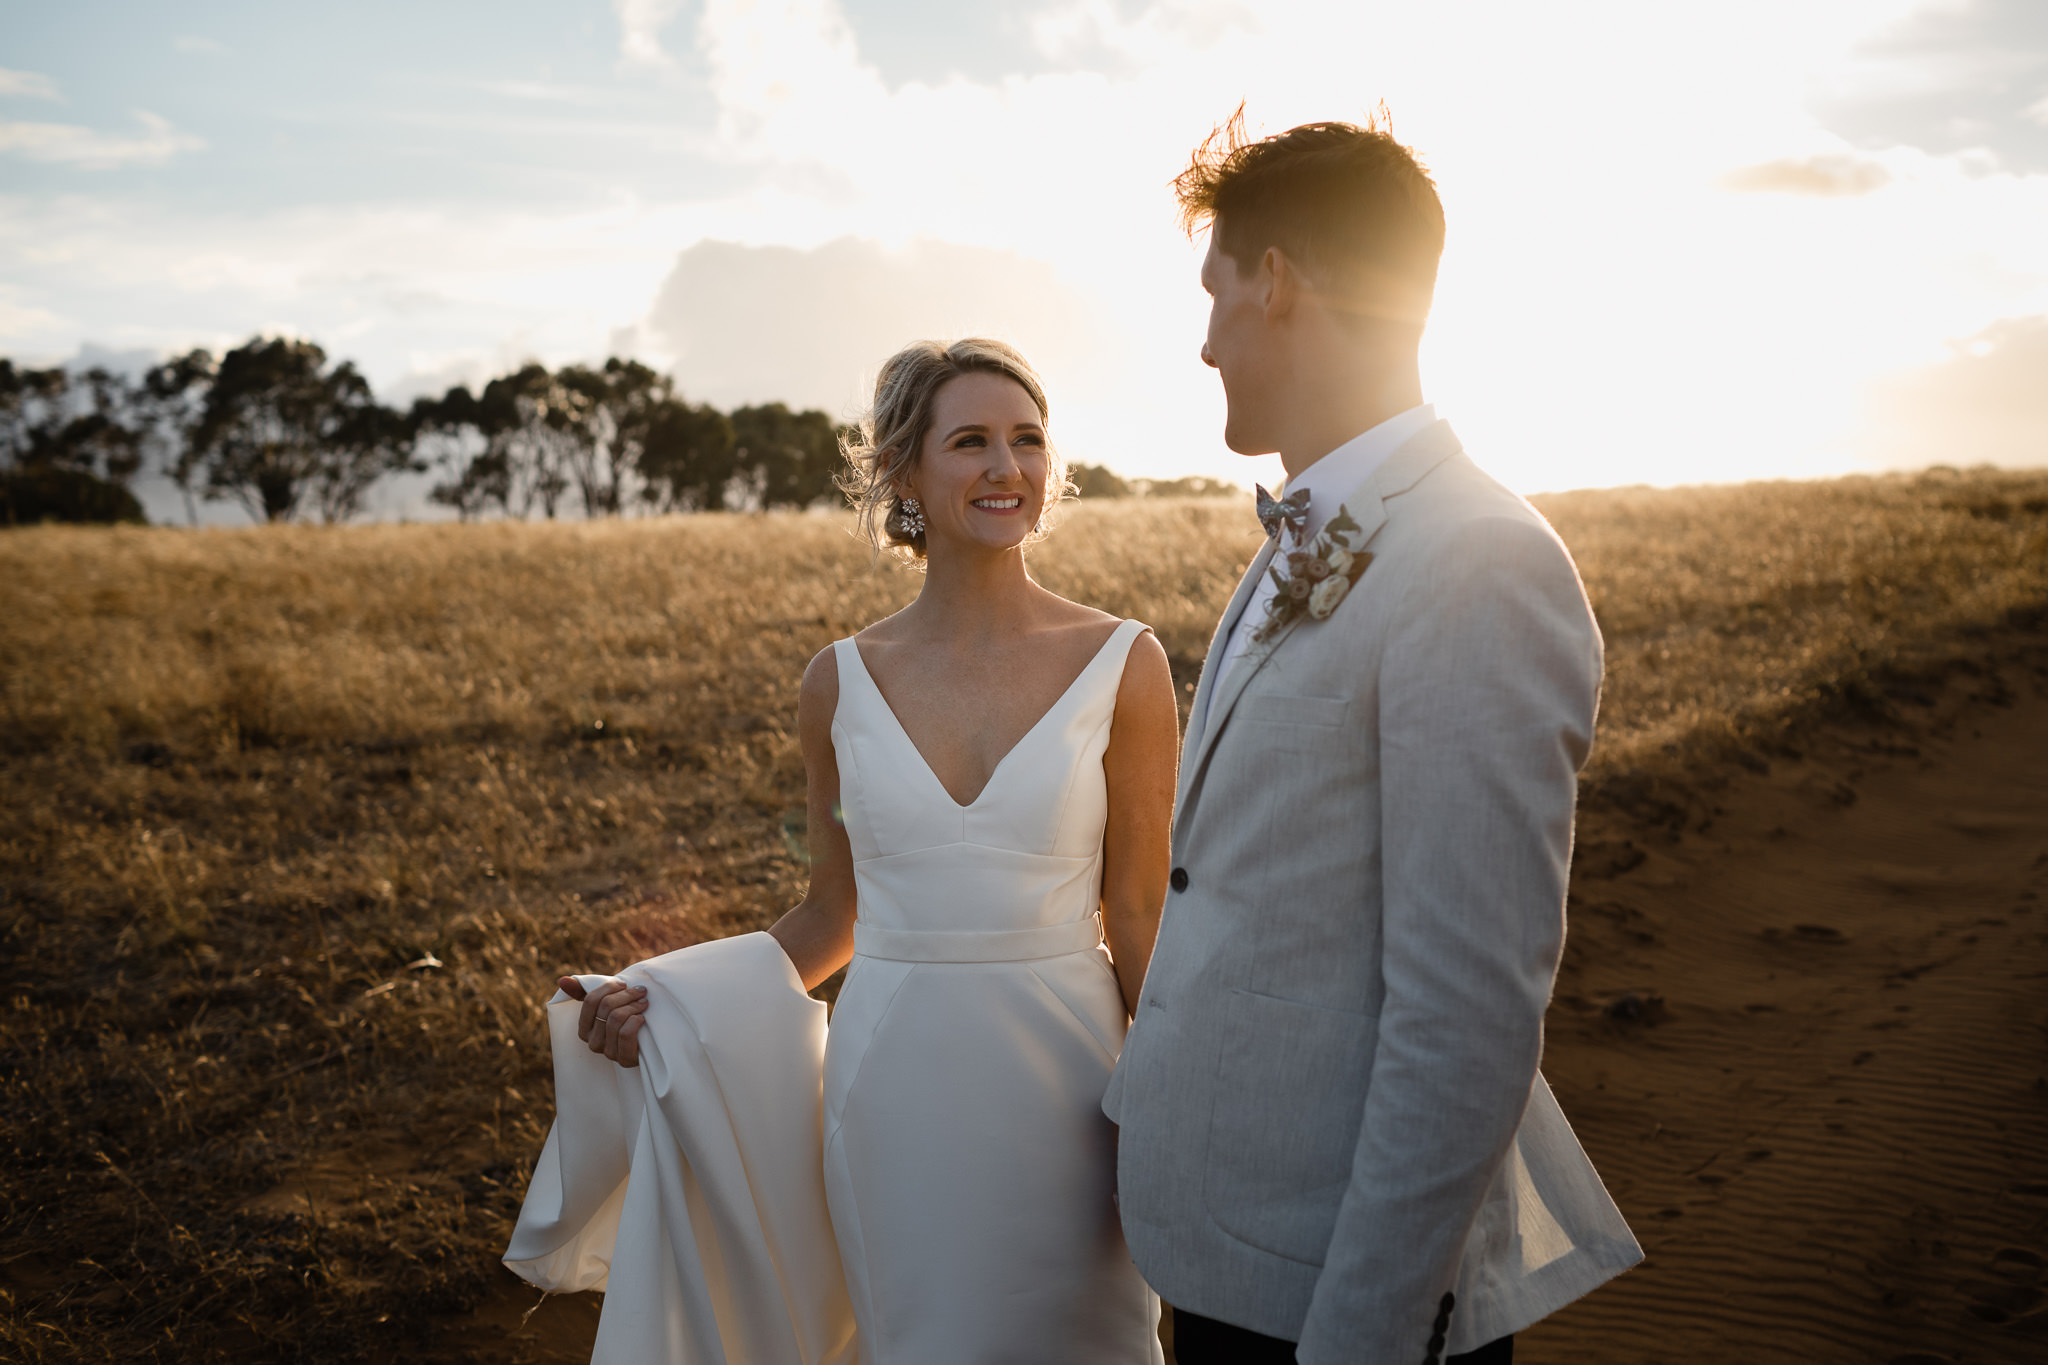 Bride and groom smiling and looking at each other lovingly at sunset with sun flare